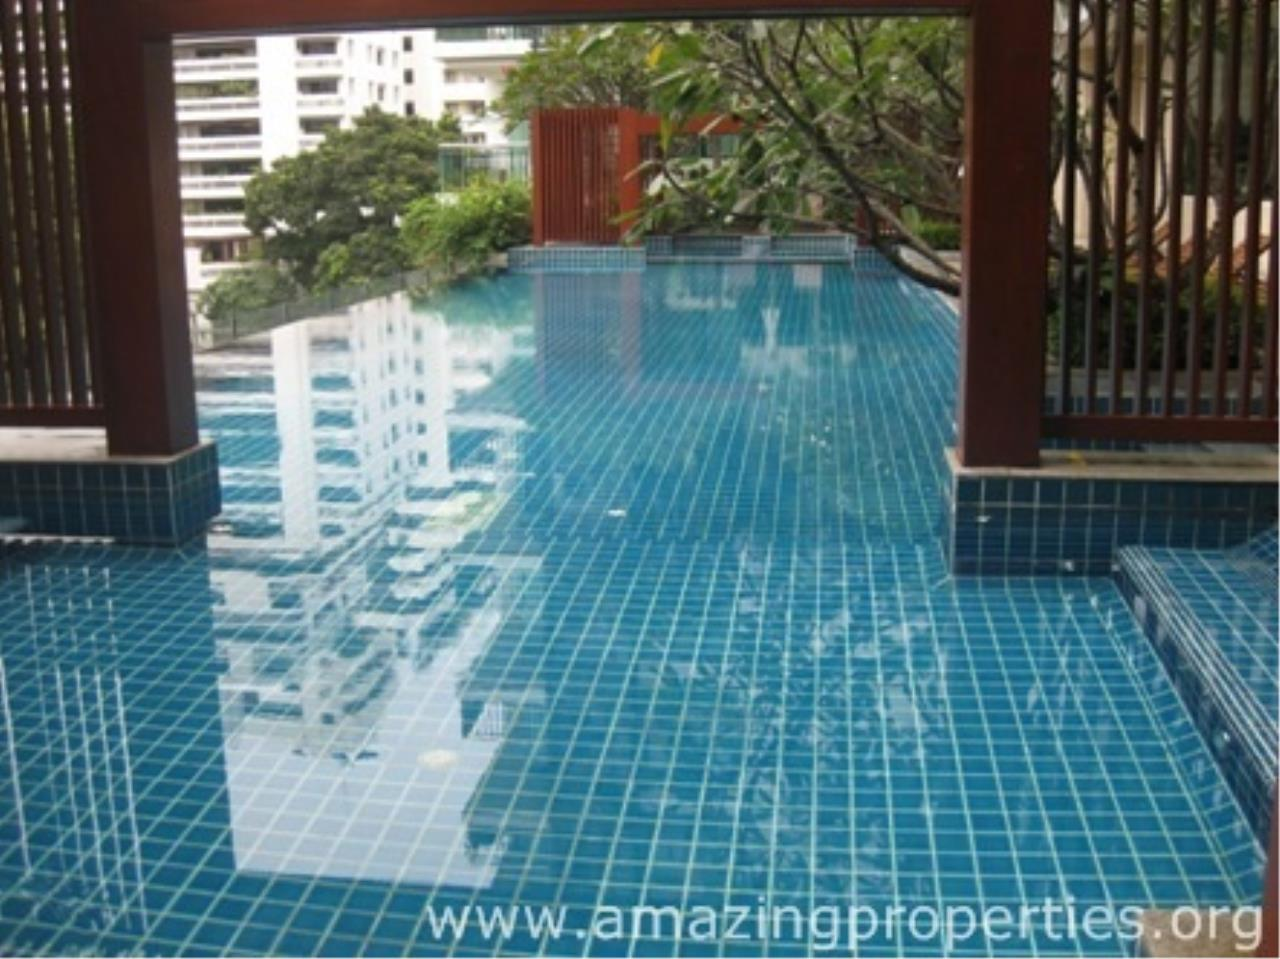 Amazing Properties Agency's 2 bedrooms Apartment for rent 5